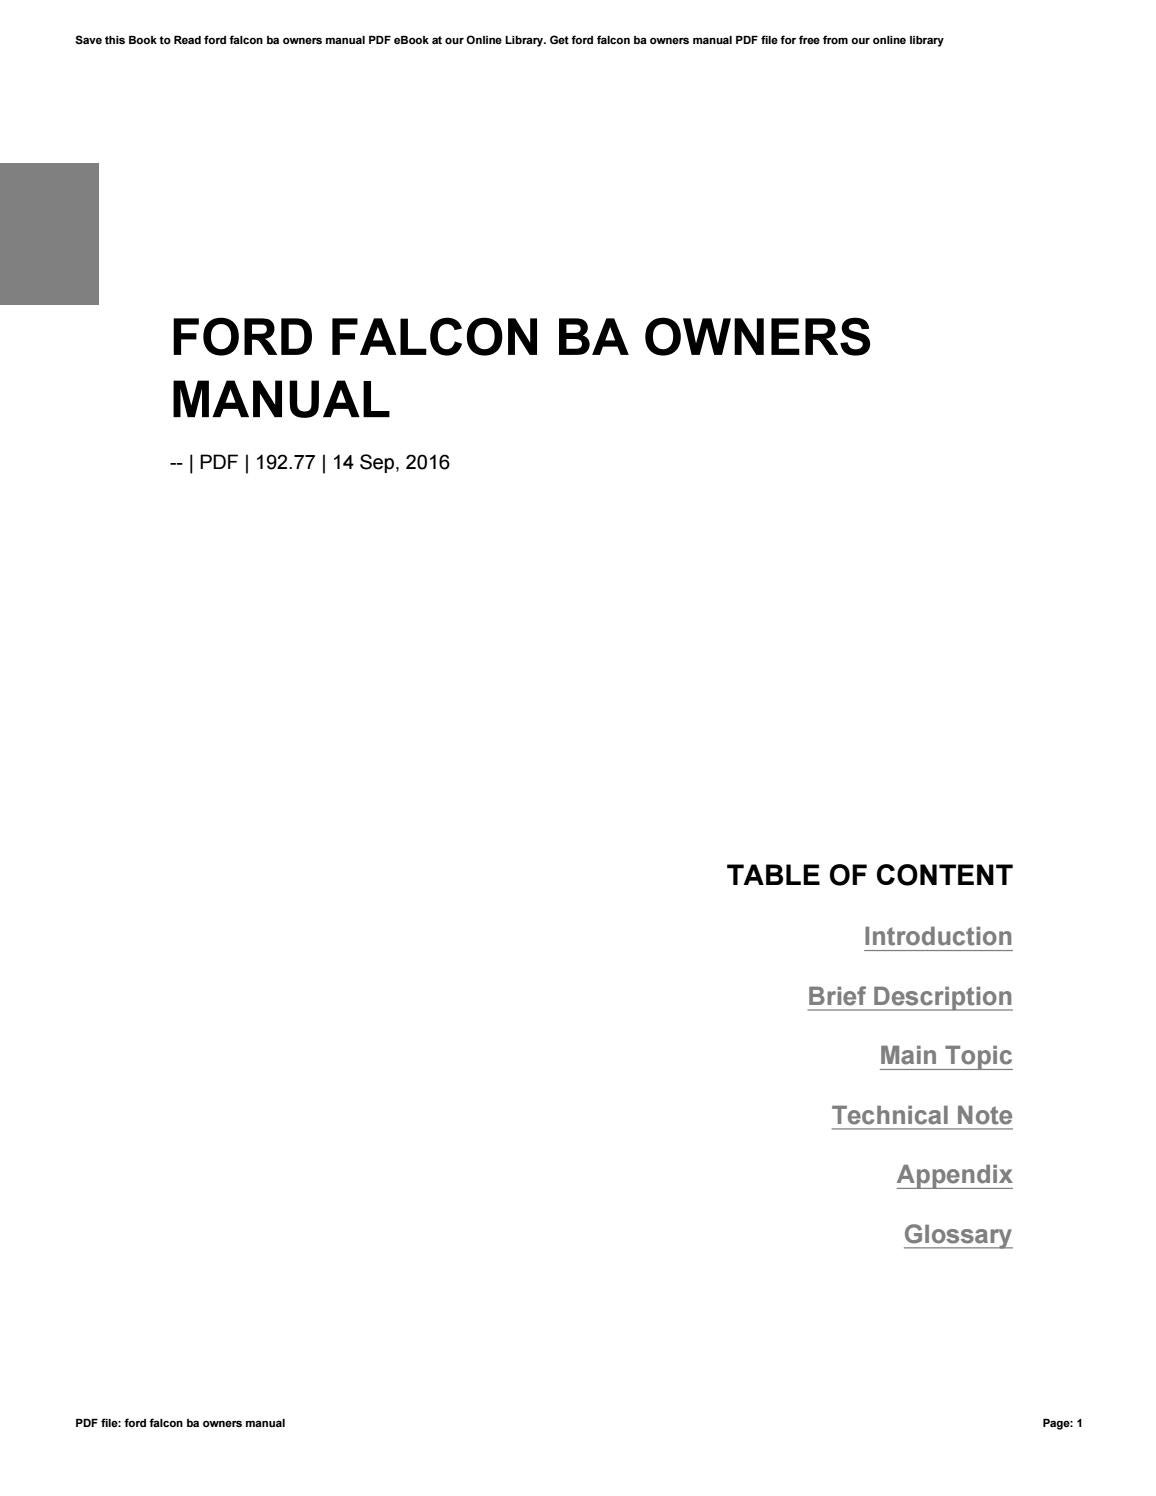 Ford Falcon Owners Manual